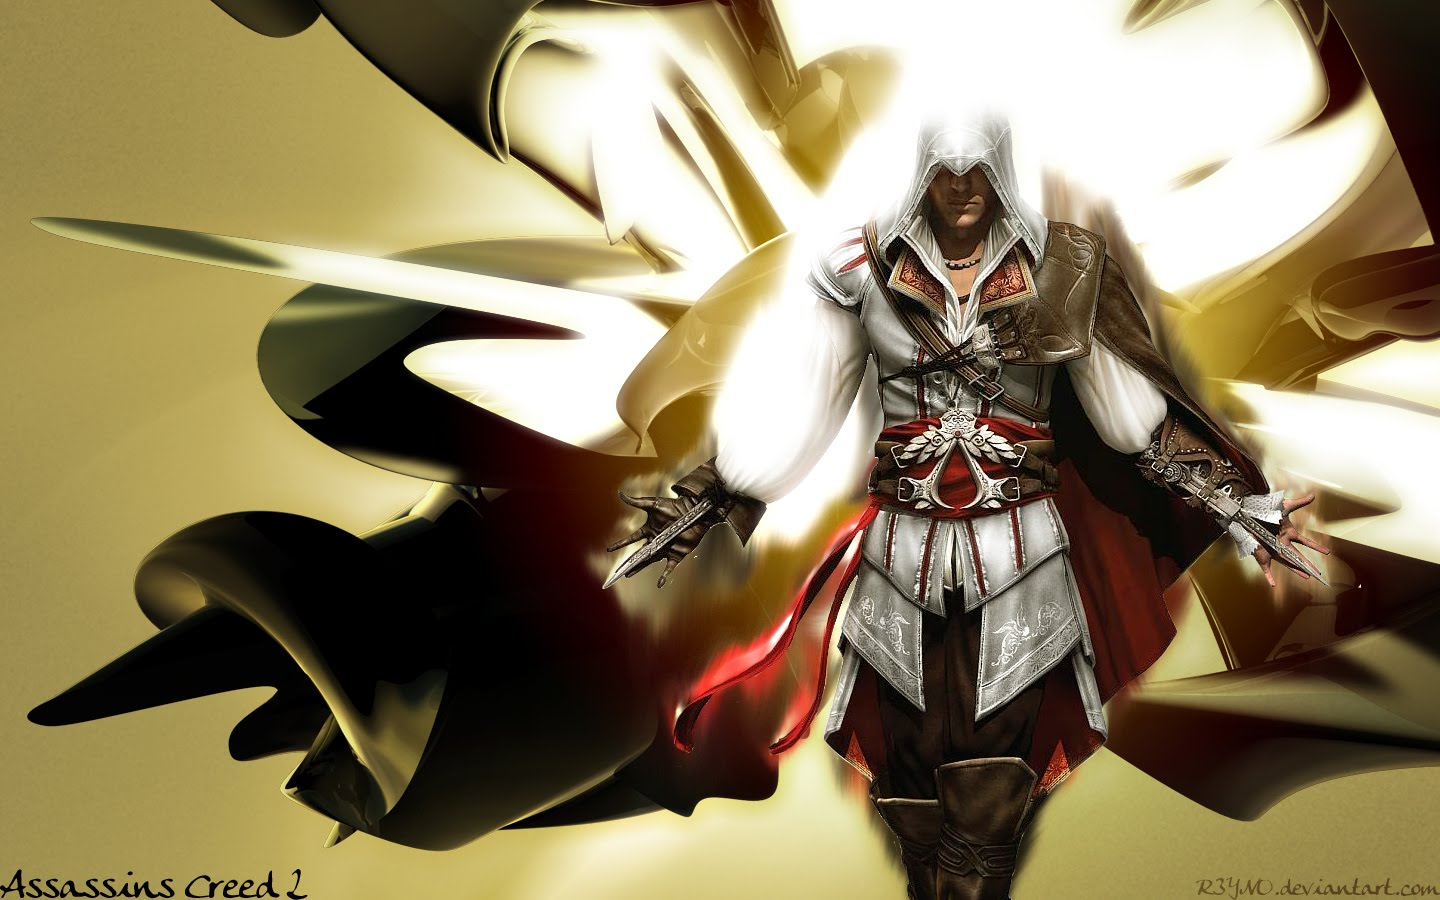 http://2.bp.blogspot.com/_j6hb7P0UBkc/TN8sfHHA2bI/AAAAAAAAAD8/0c9un91quAk/s1600/assassins_creed_2_wallpaper_by_r3yno.jpg